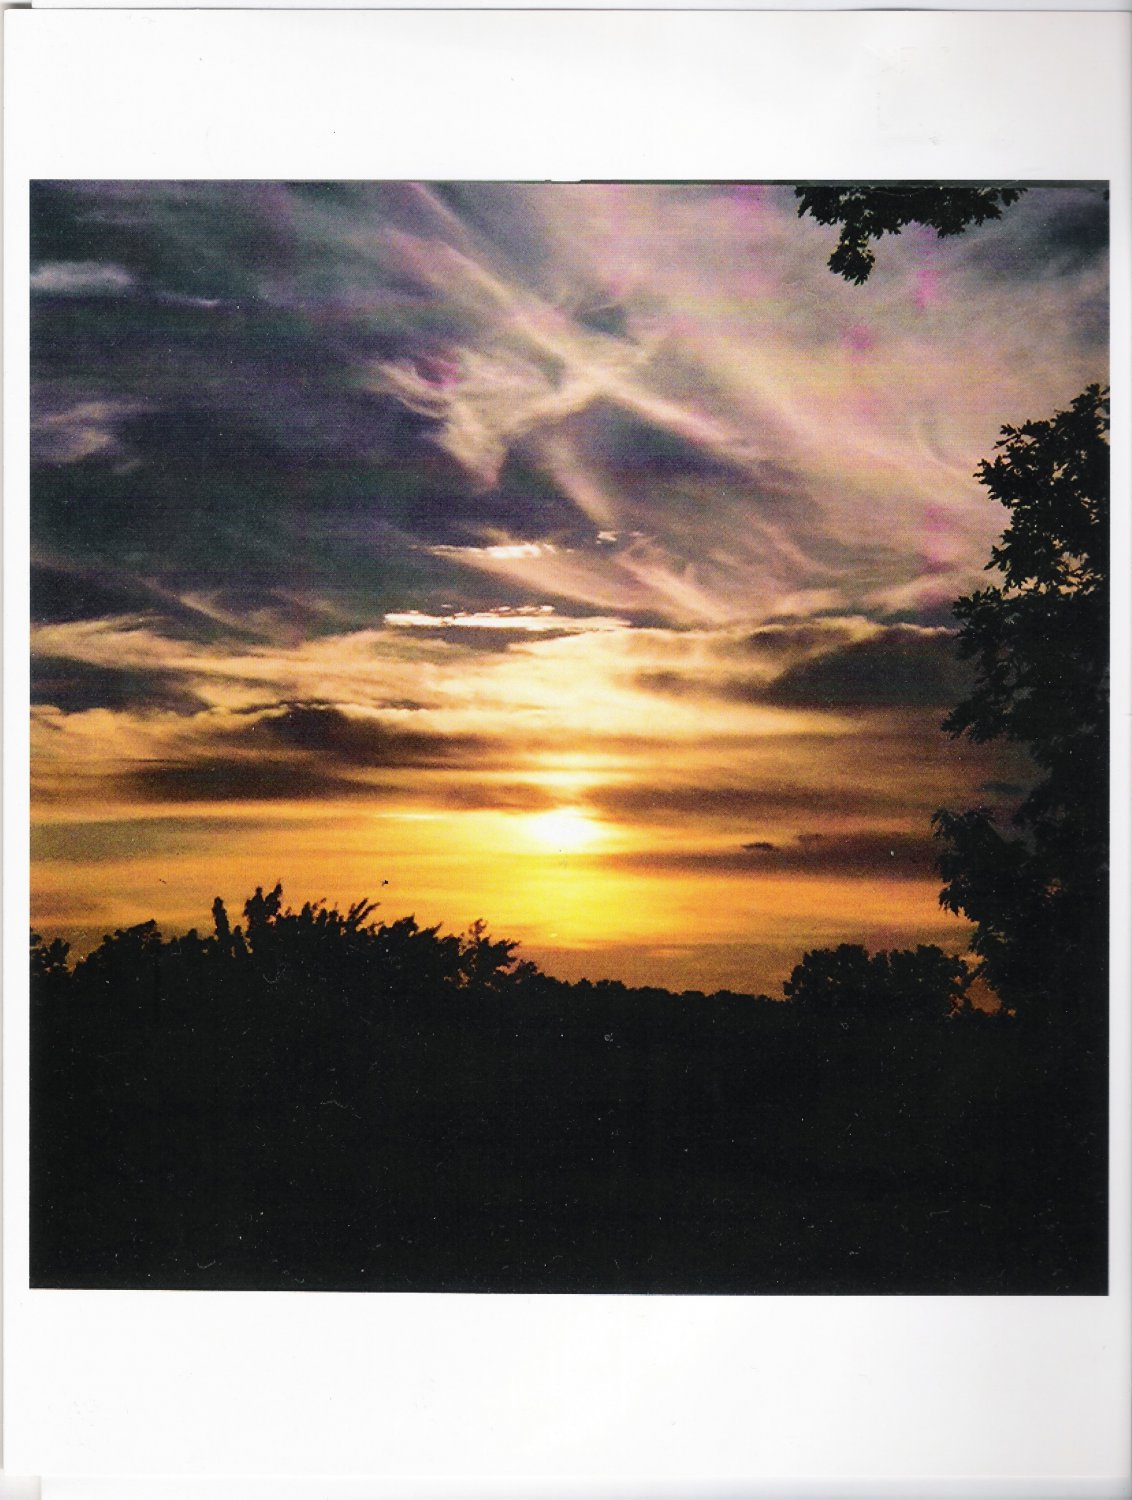 """Horizon Near Dusk #1"" - 8 x 10 - Color Film Photography - USA"